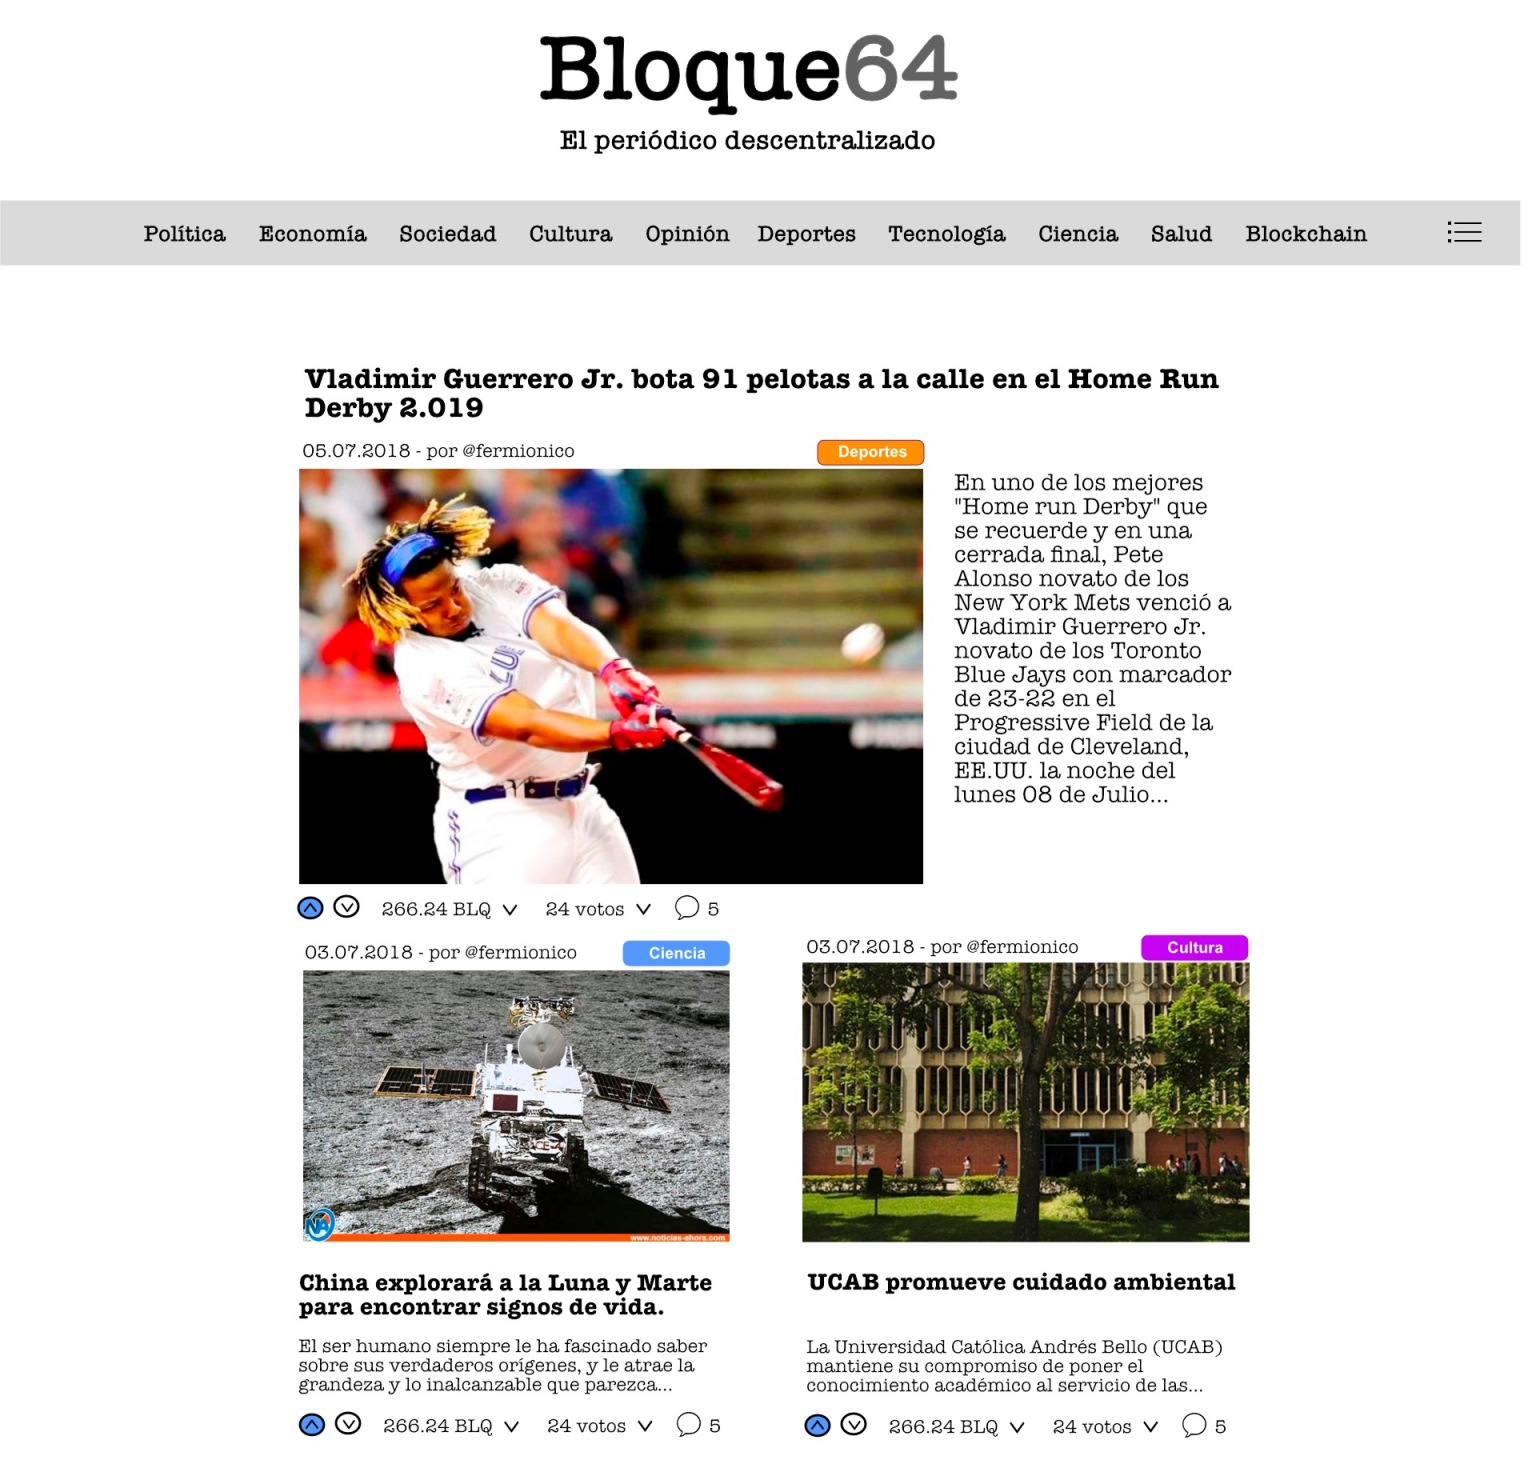 bloque64_main_layout.jpg